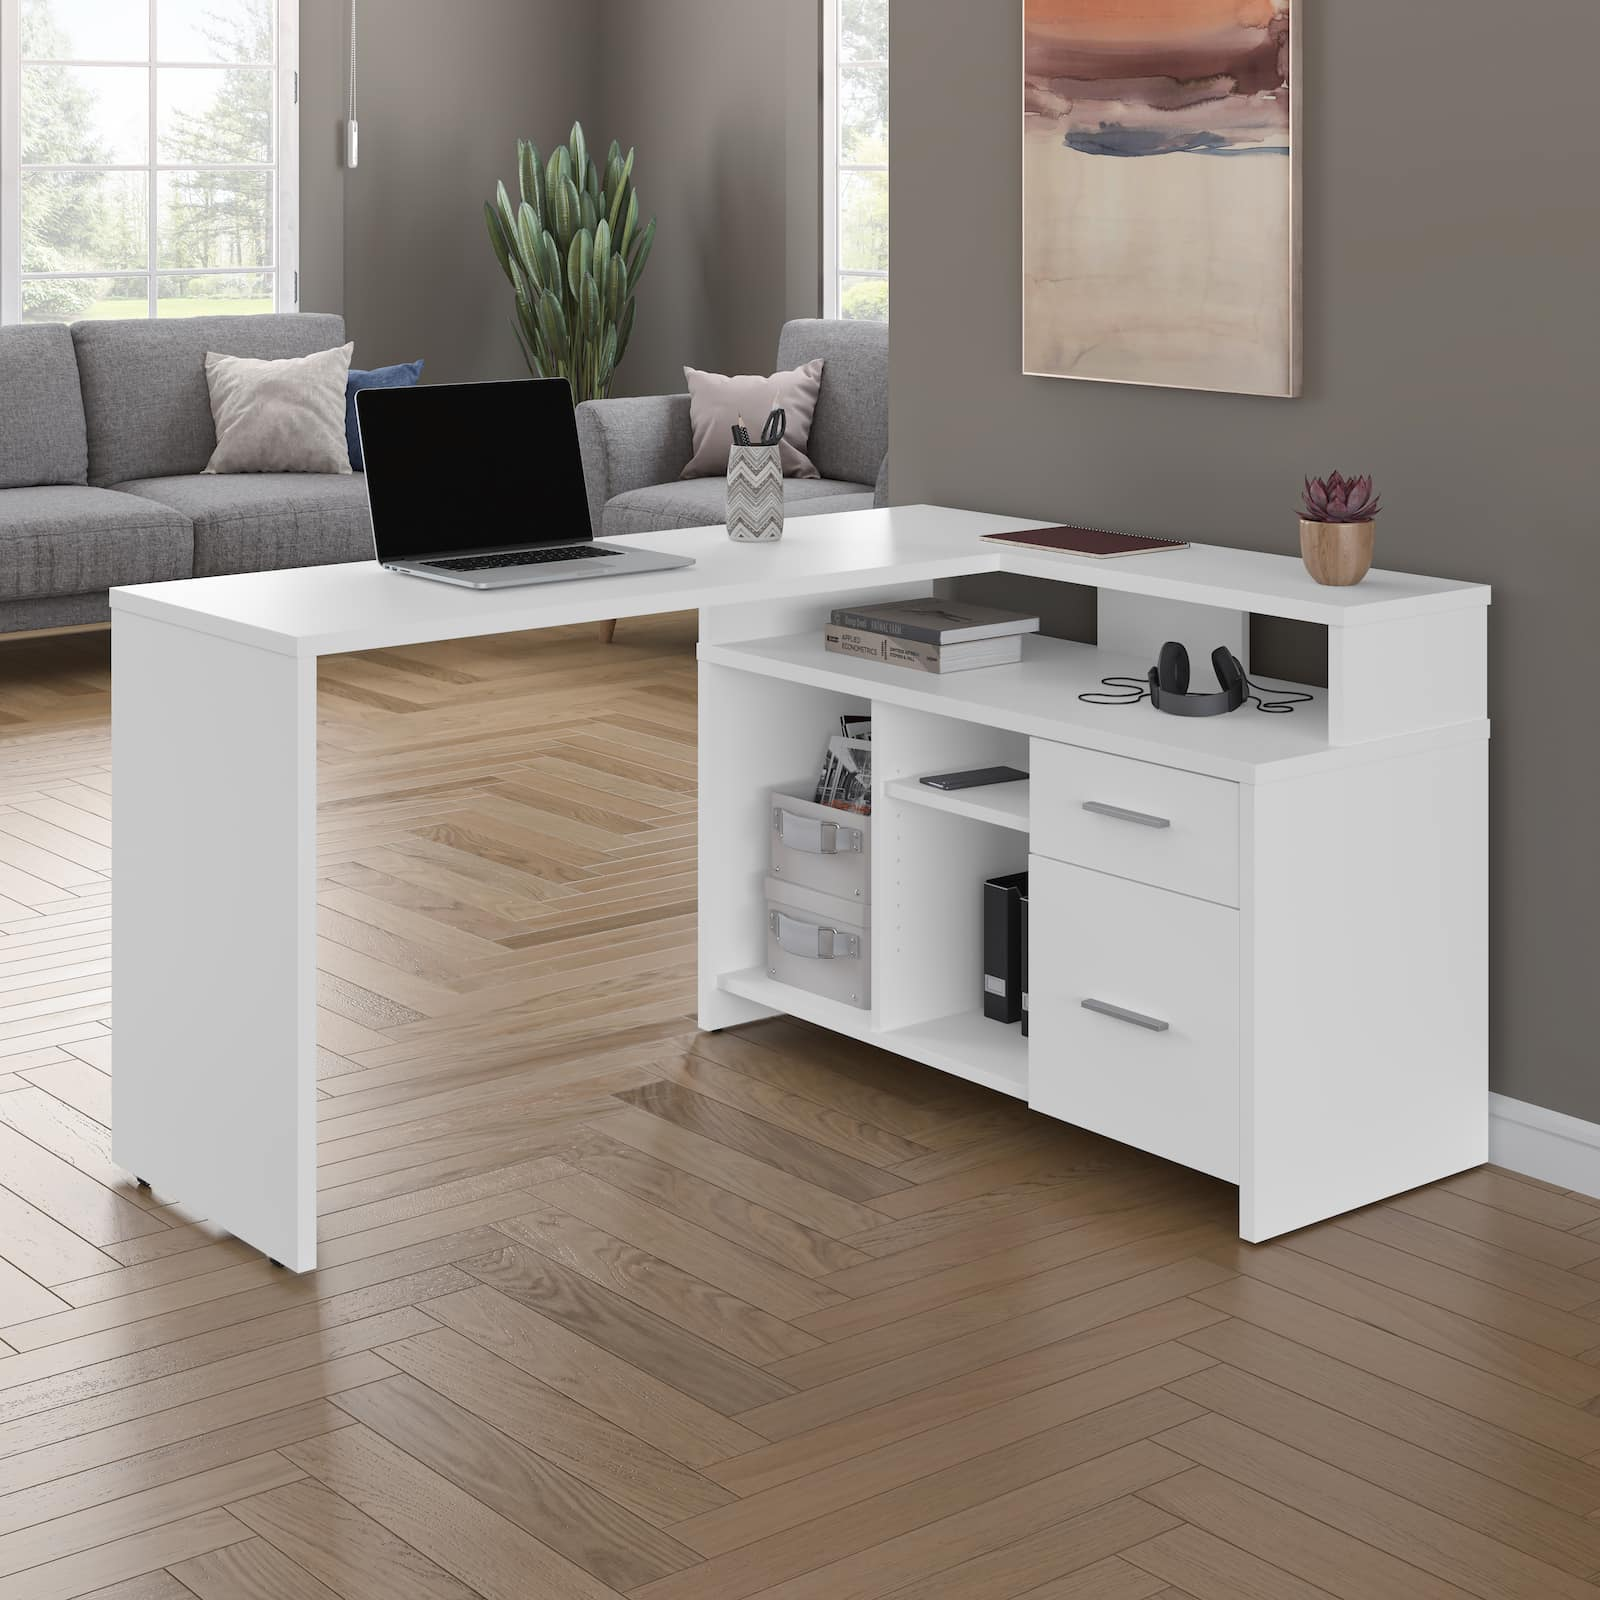 Searching for the Right Desk: 4 L Shaped Desk Features You'll Love!